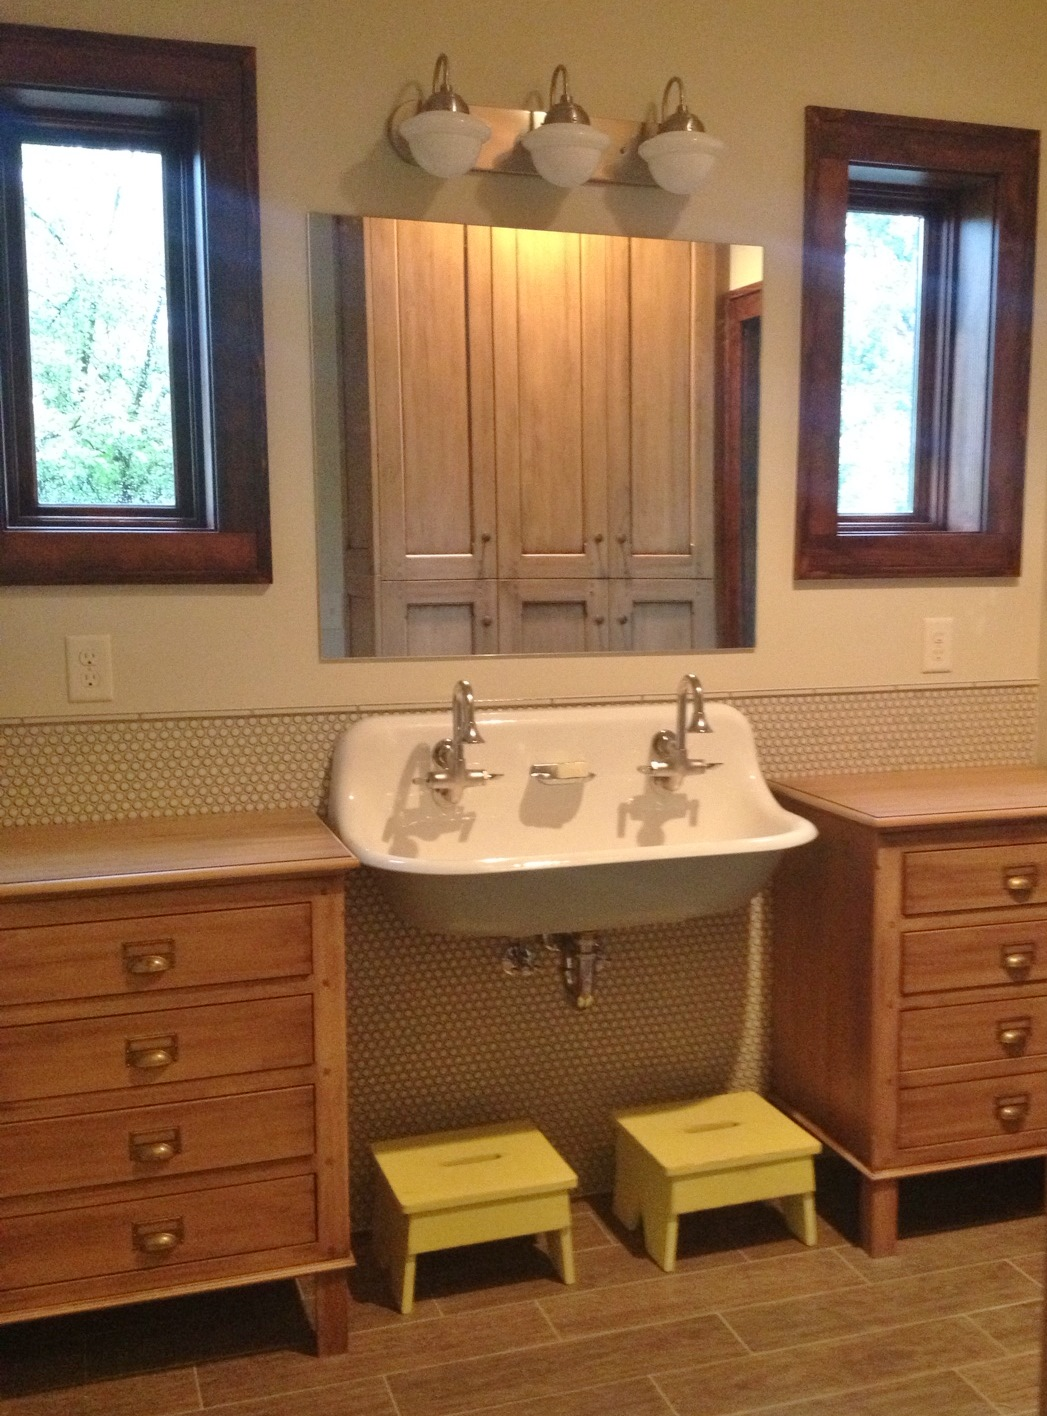 Bathroom Lighting Vintage vintage vanity lights add retro spin to kids' bath remodel | blog